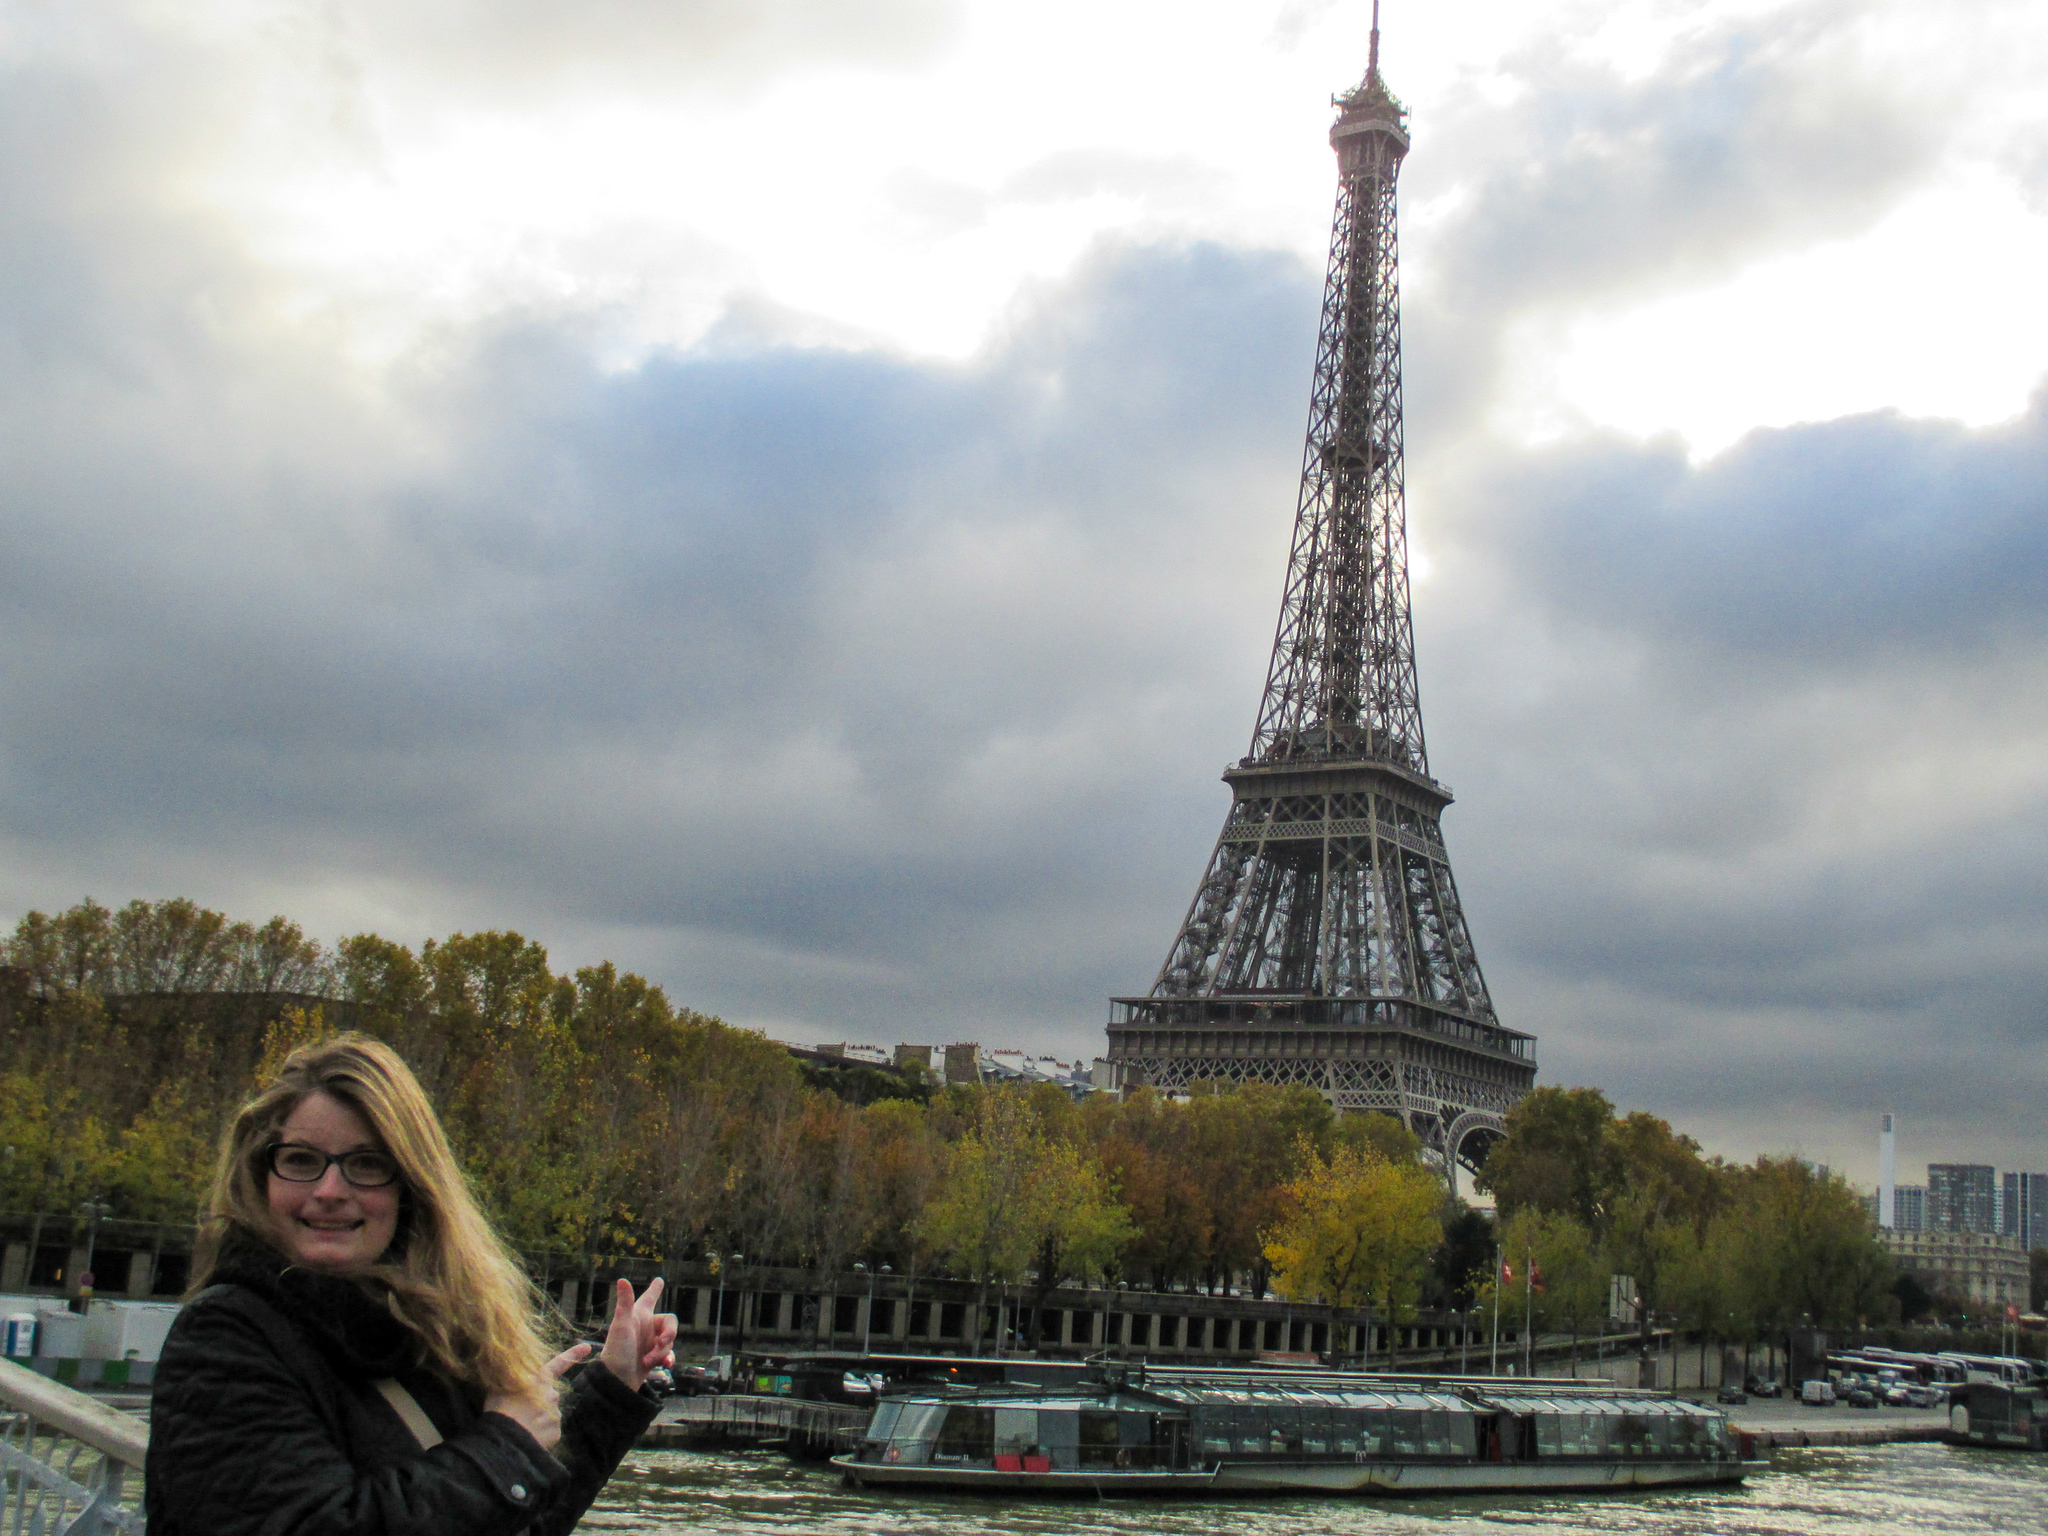 is solo travel worth it? yes! you see paris!